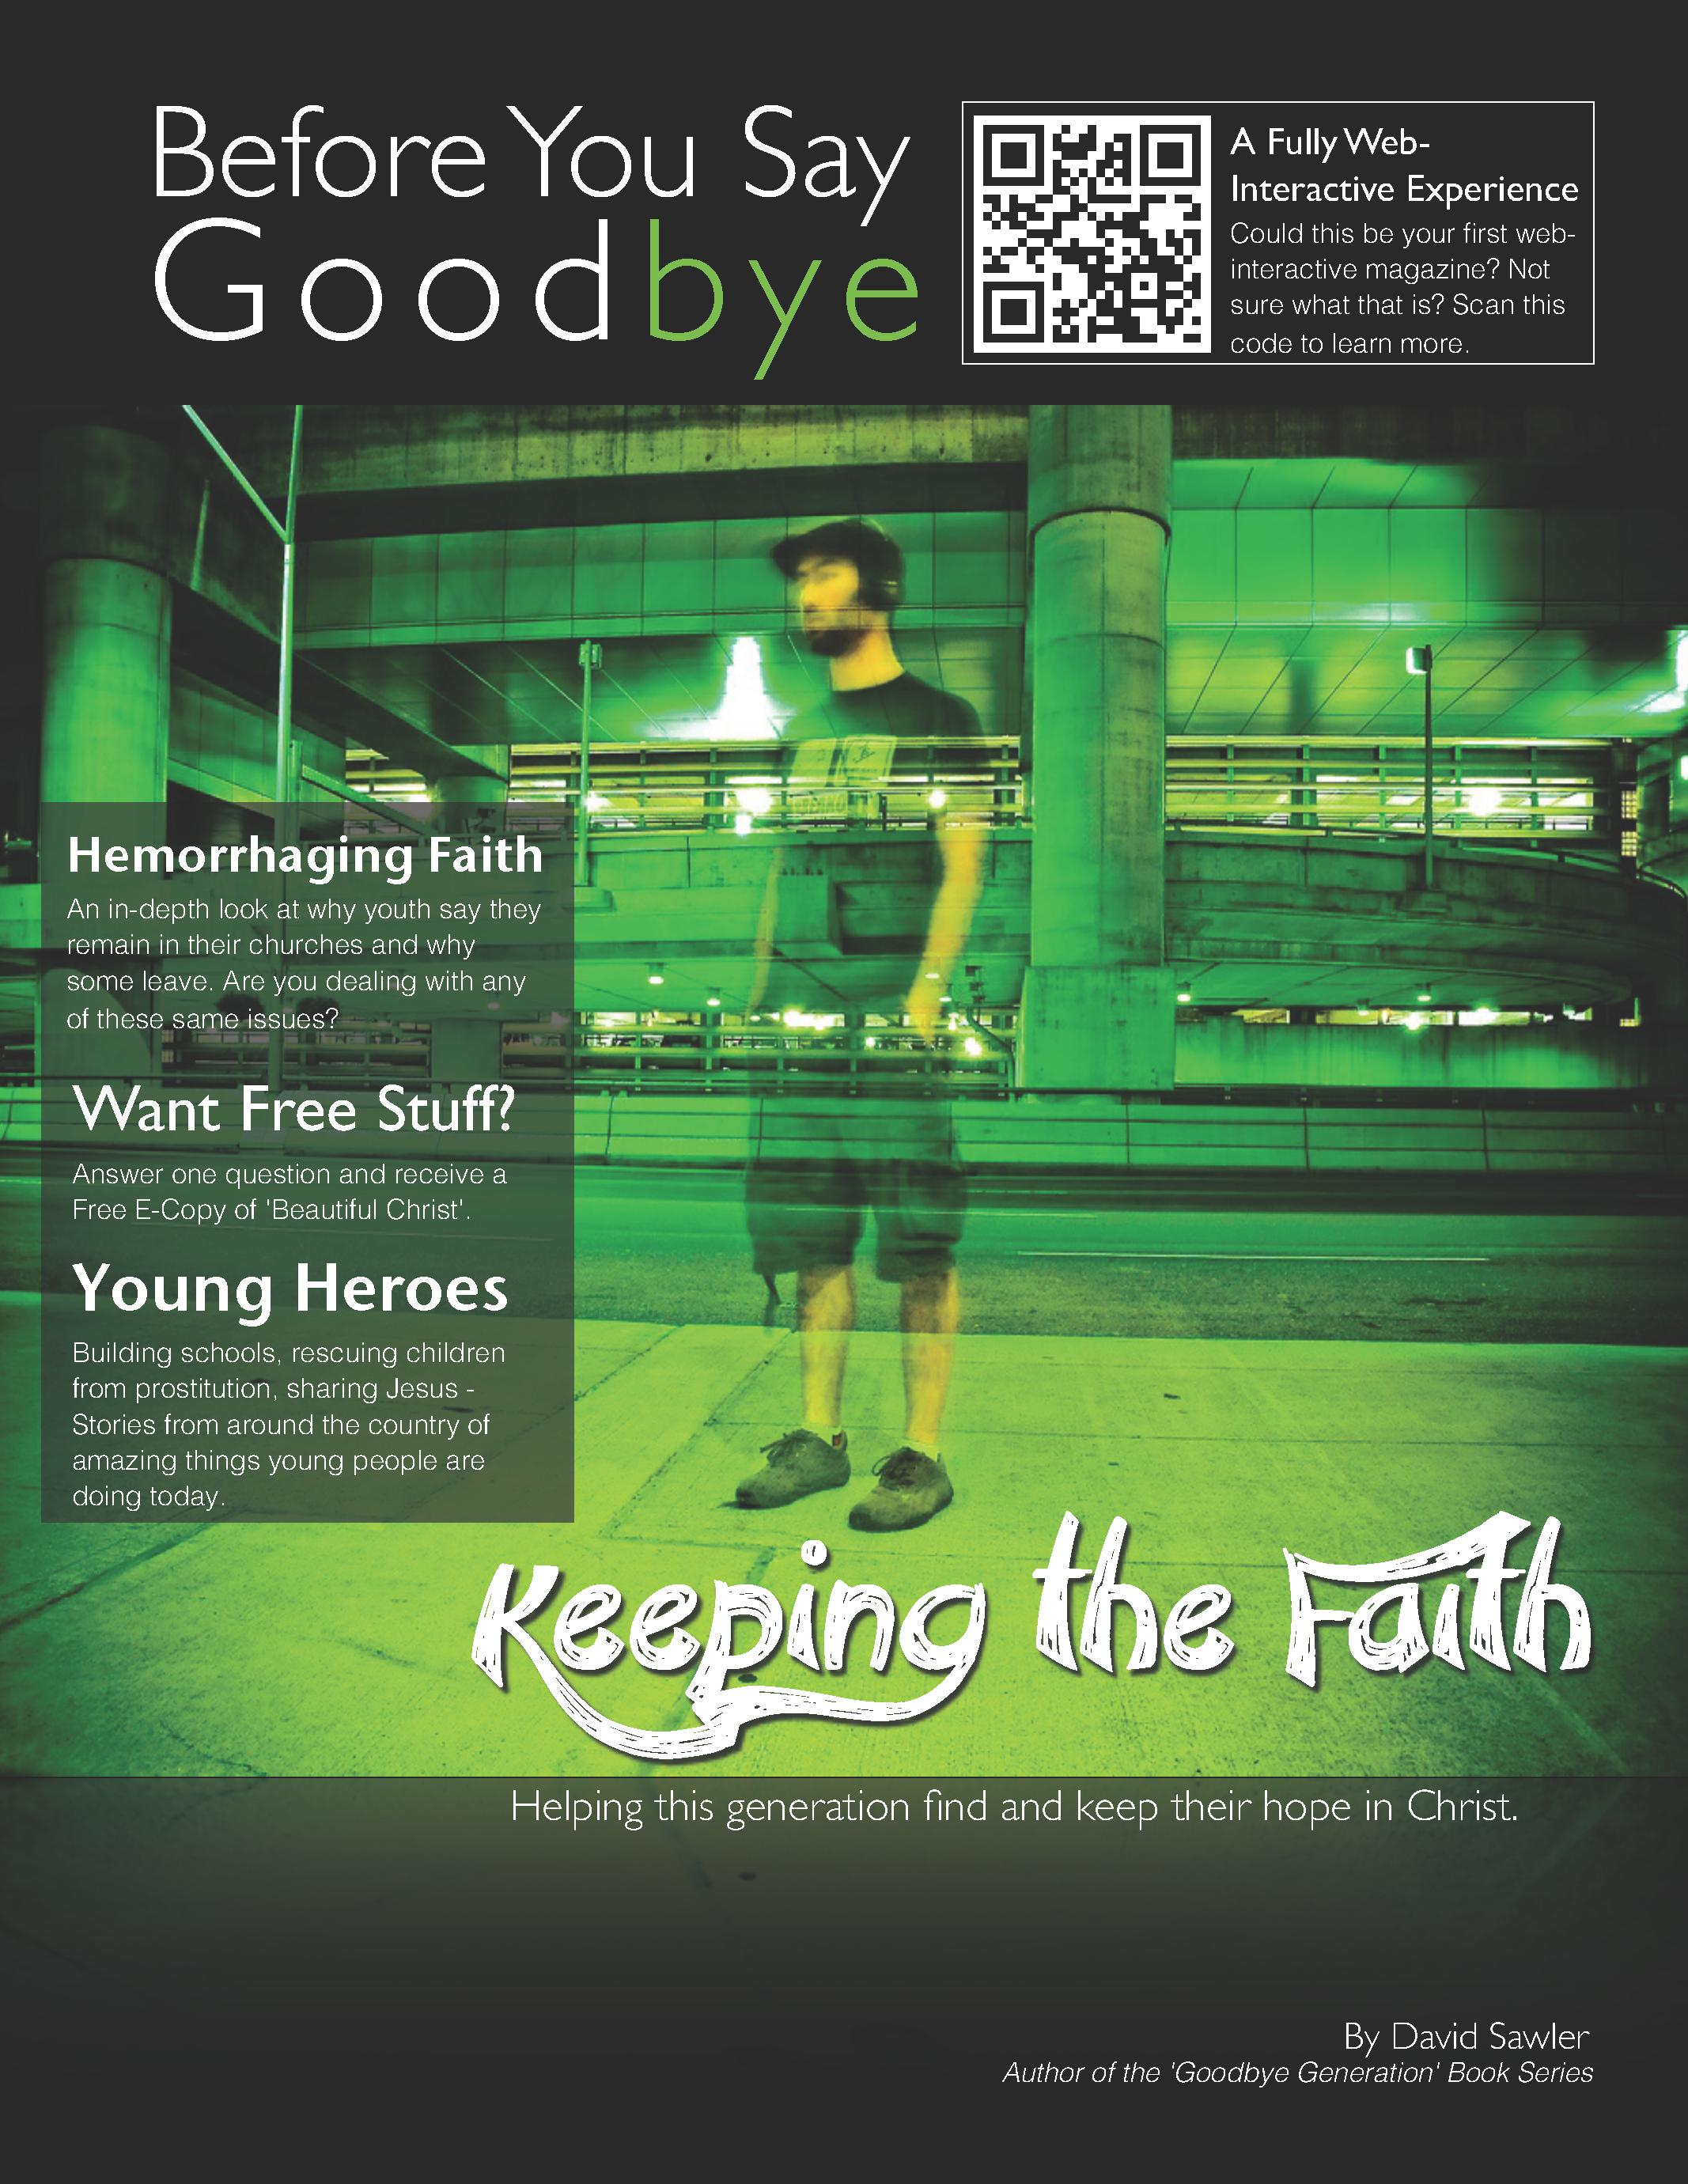 before-you-say-goodbye-cover9a11506cb2cf645badfcff00009d593a